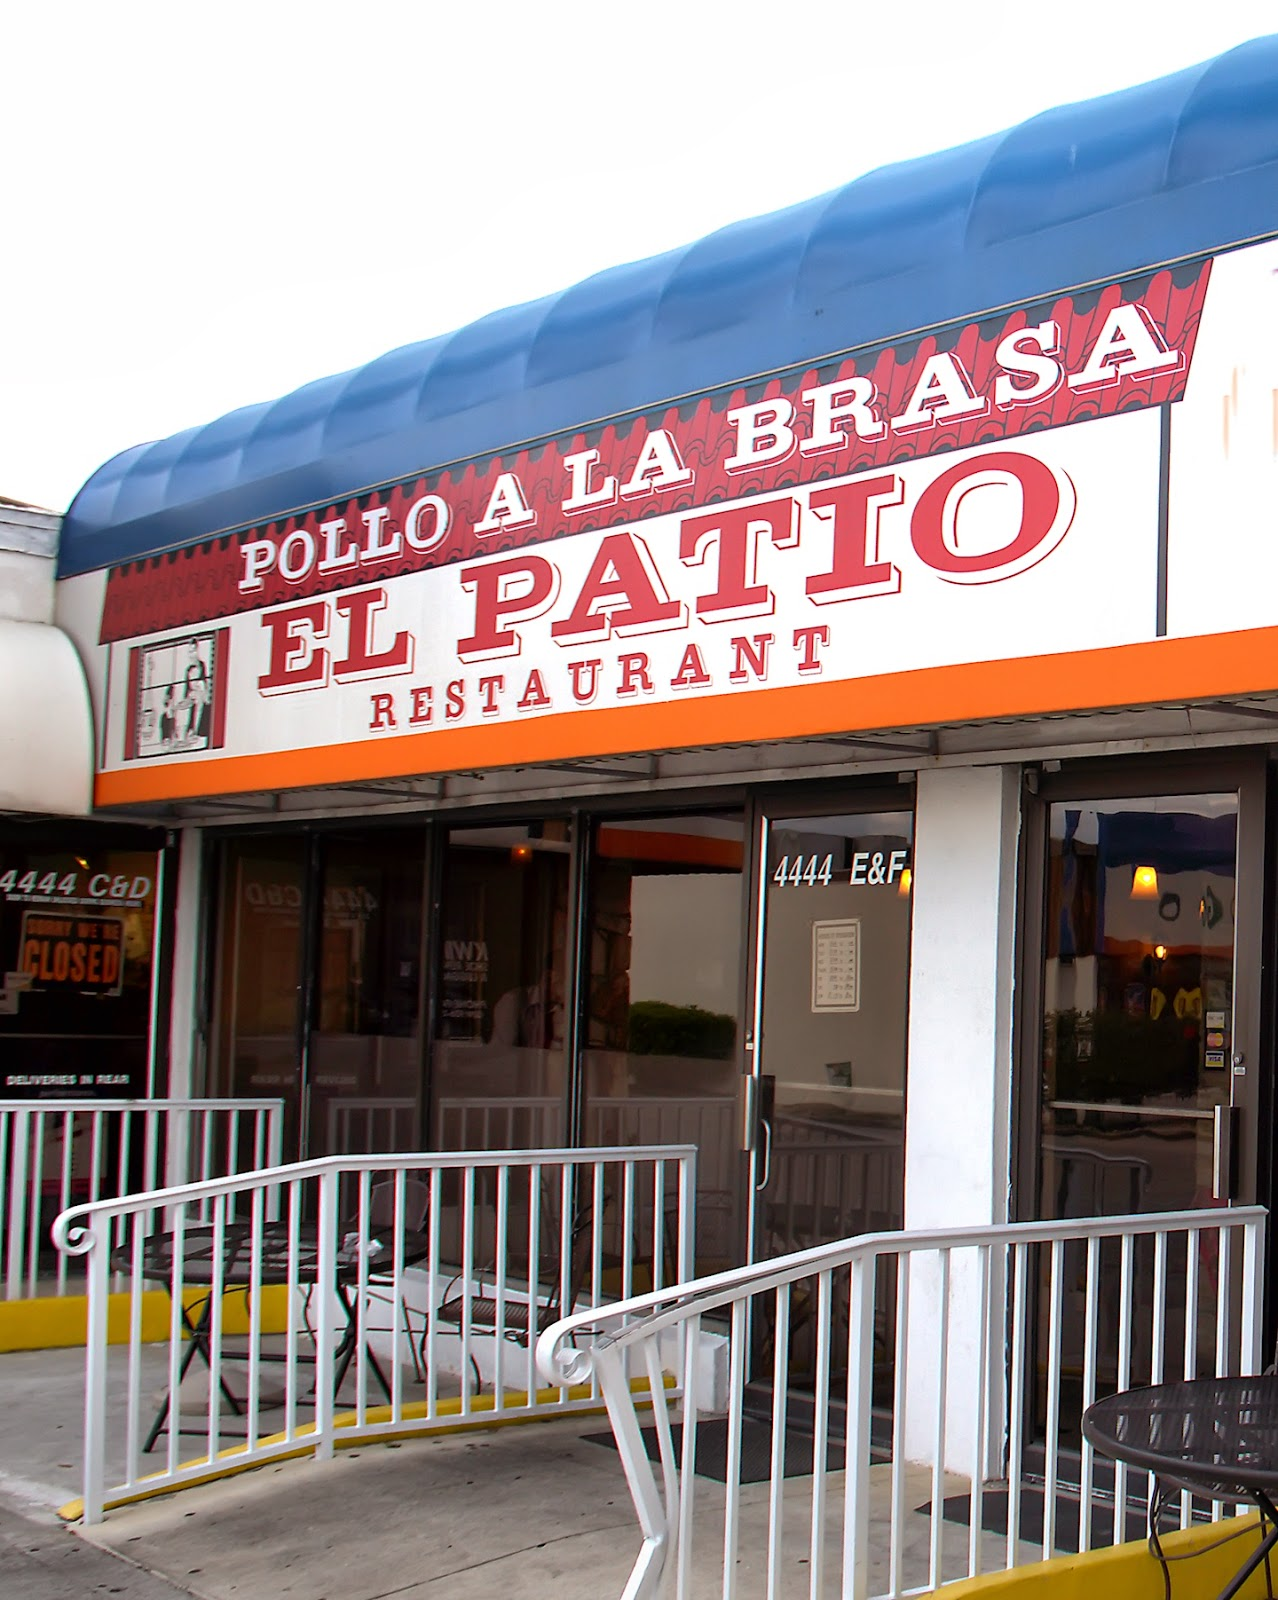 Southwest Florida Forks: Dinner at El Patio